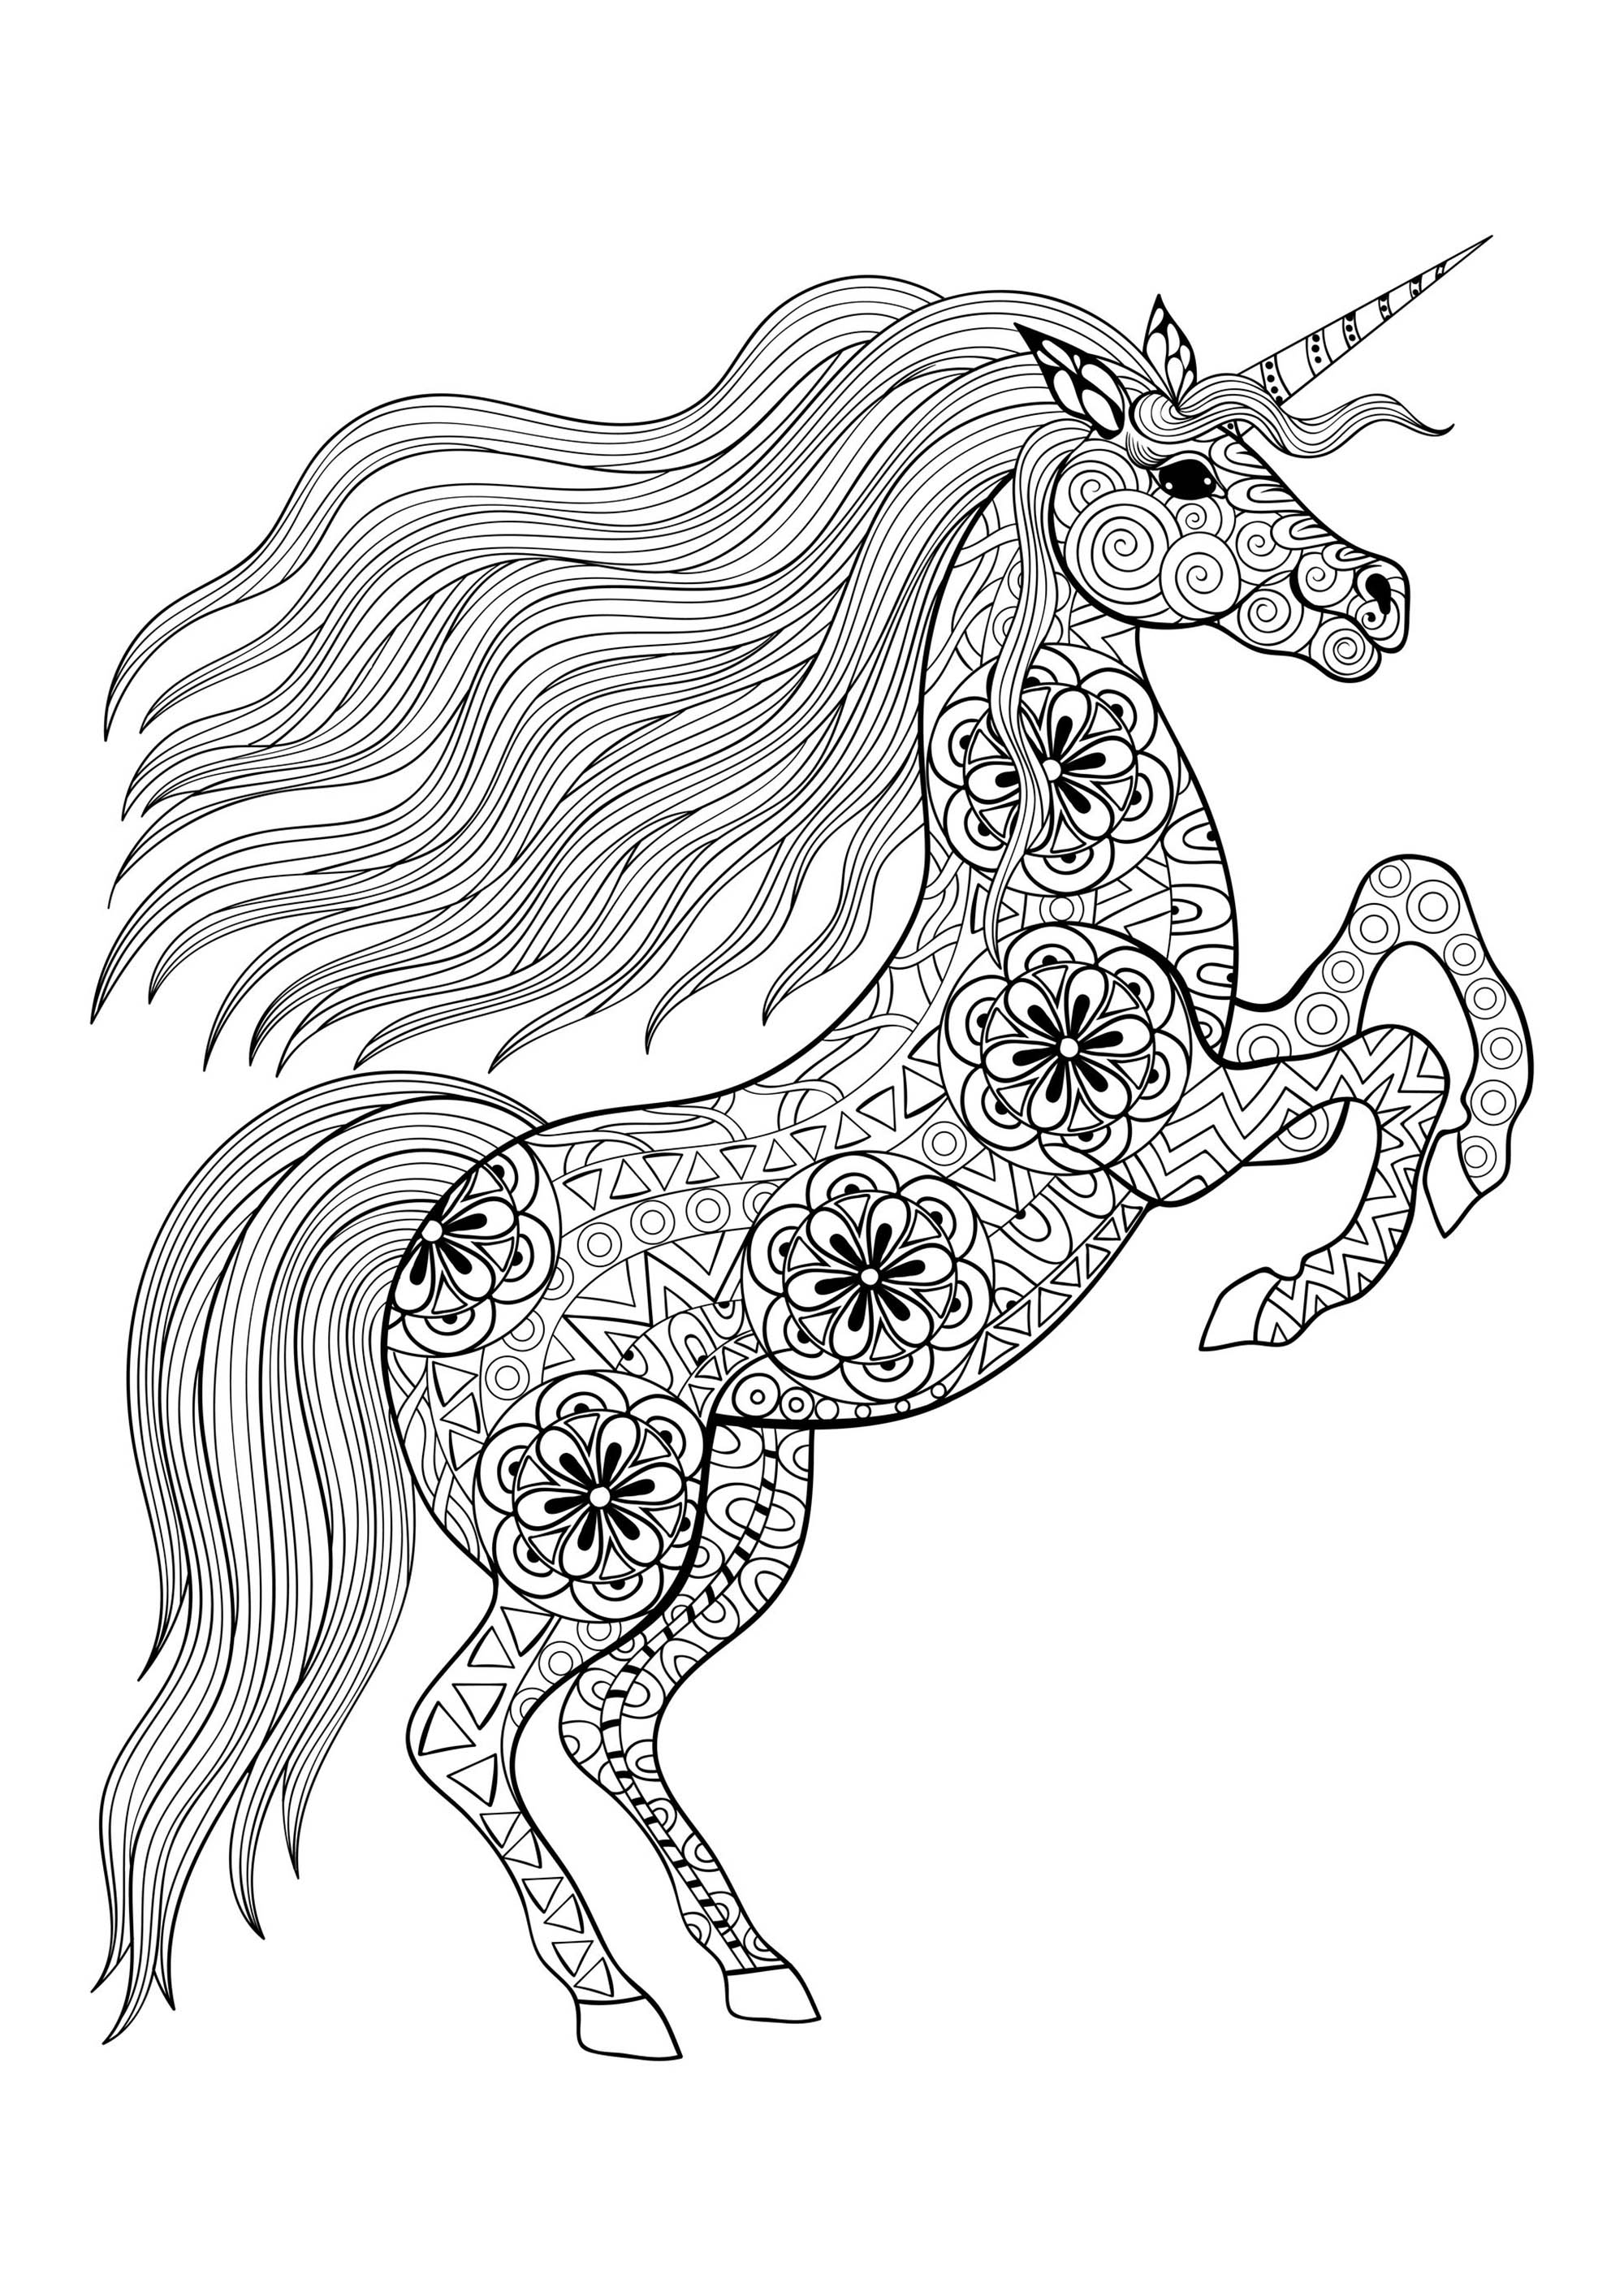 Unicorns to color for children - Unicorns Kids Coloring Pages